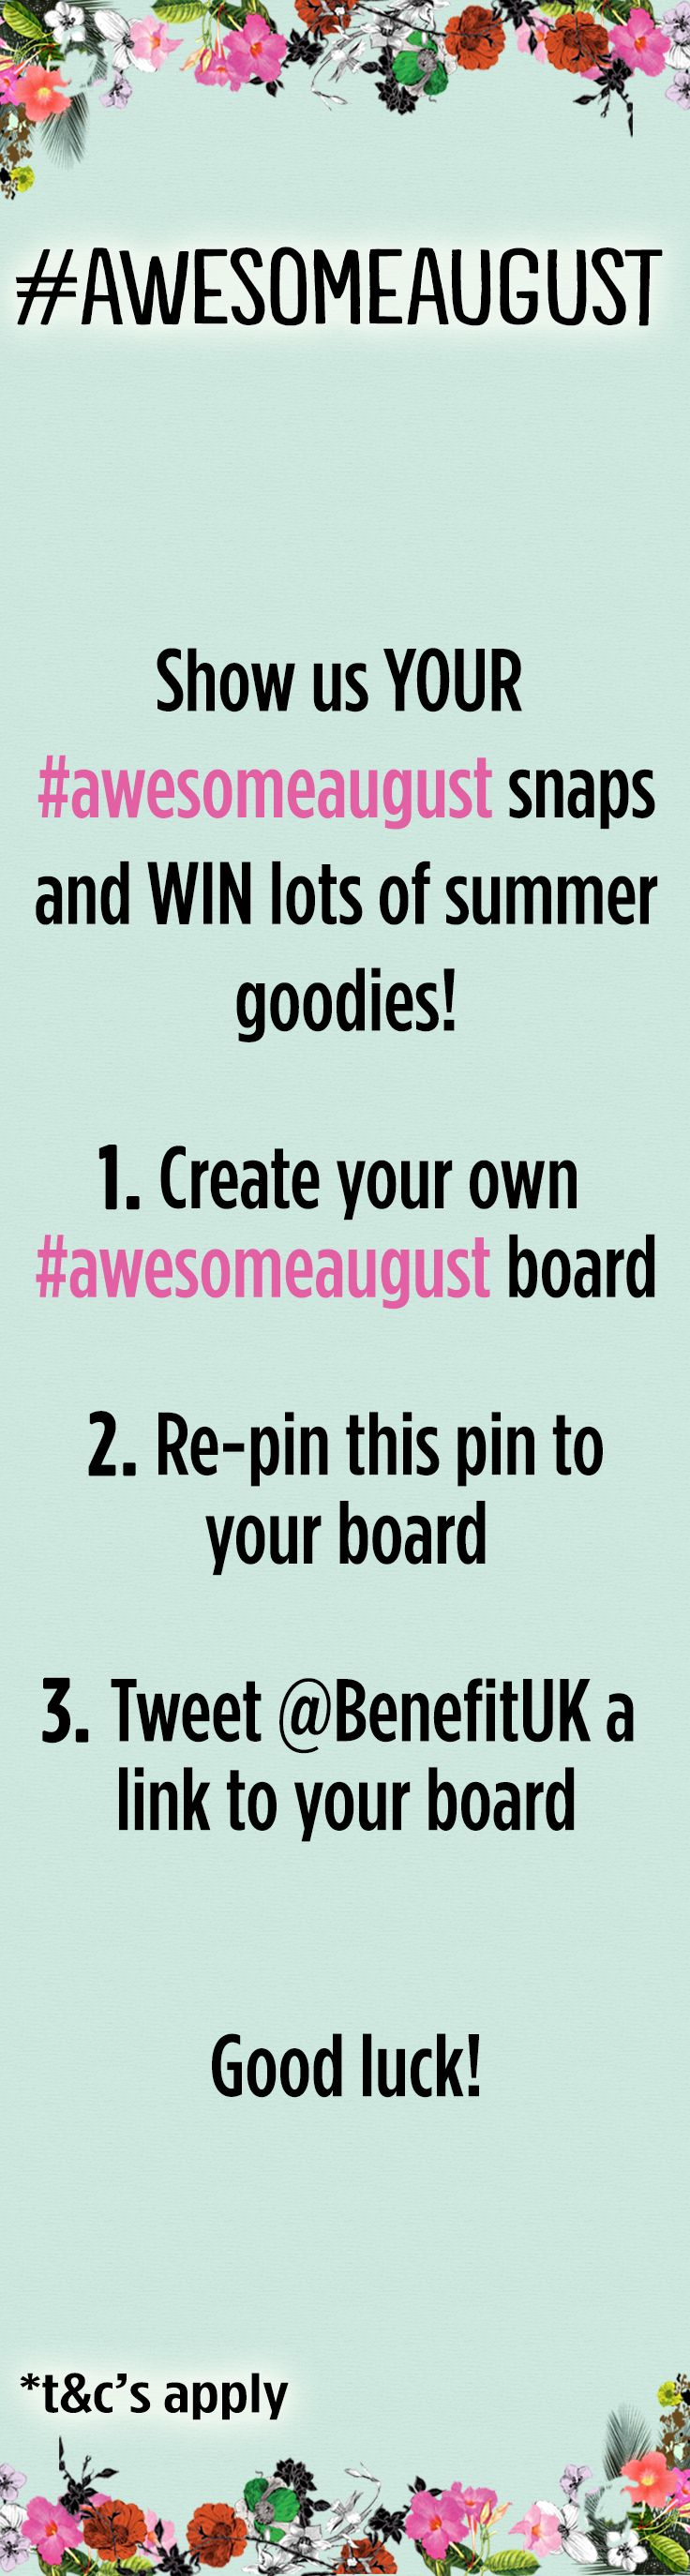 It's your last chance to enter our amazing #awesomeaugust competition gals! Get pinning and tweet us to tell us!